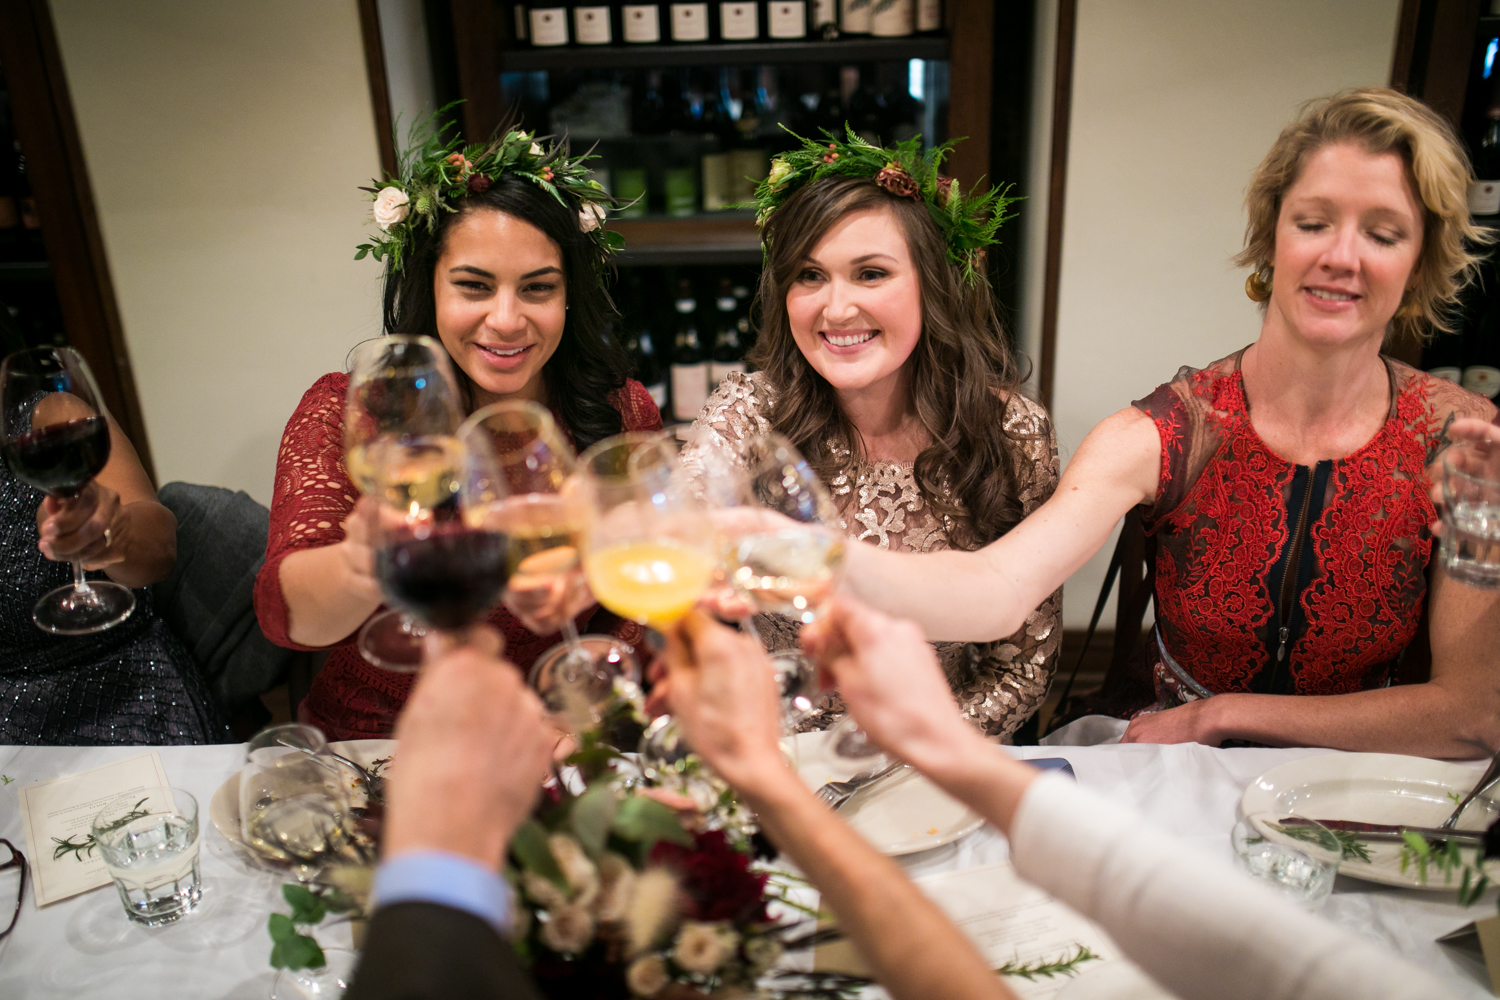 A wine toast at a  Maialino wedding reciption.